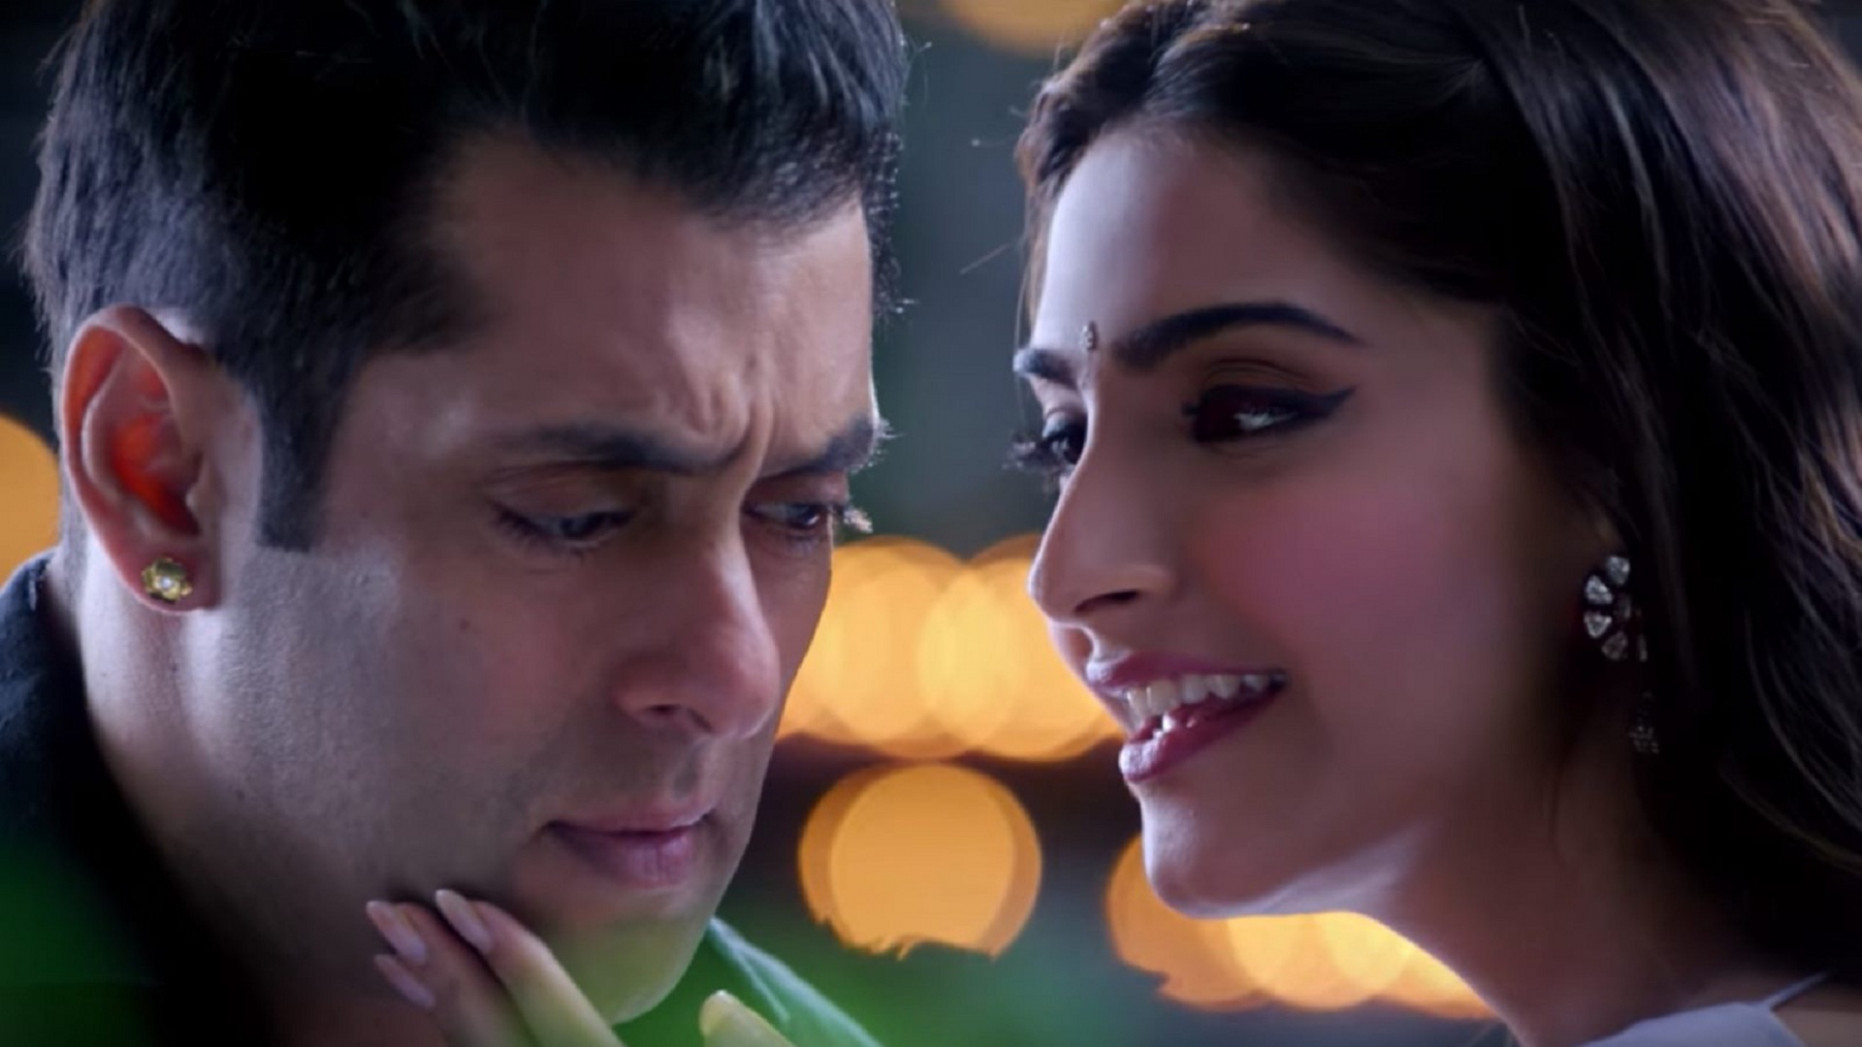 Bollywood couple love and romance | HD Wallpapers Rocks